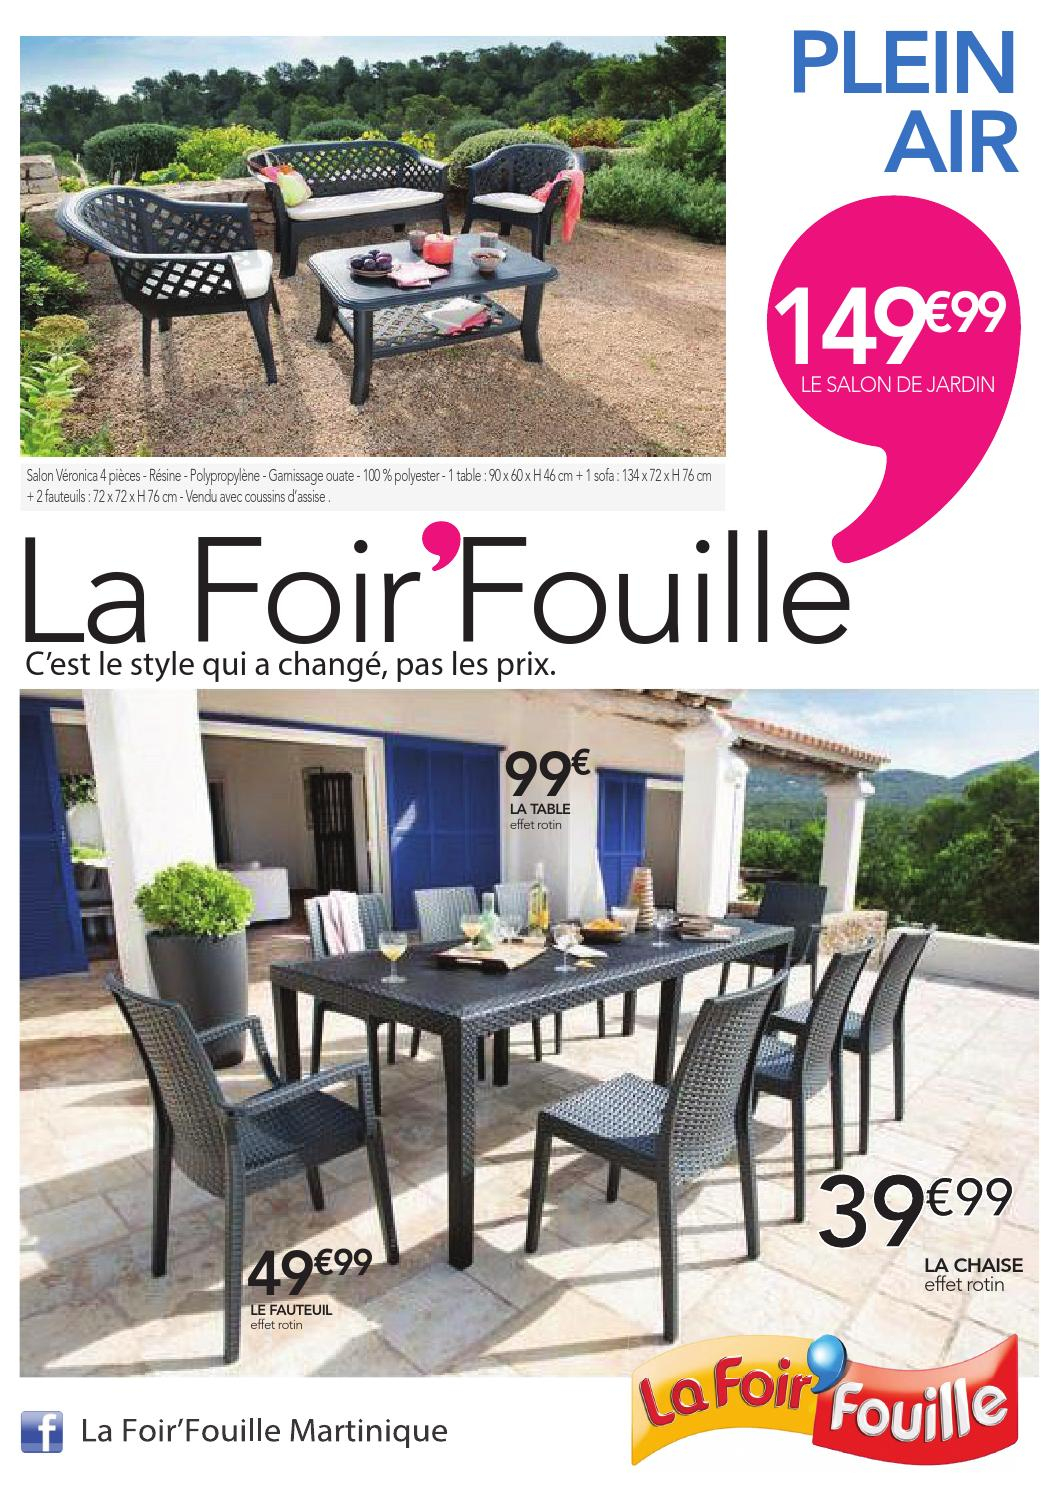 Catalogue Plein Air By La Foir'fouille - Issuu tout Salon De Jardin La Foir Fouille